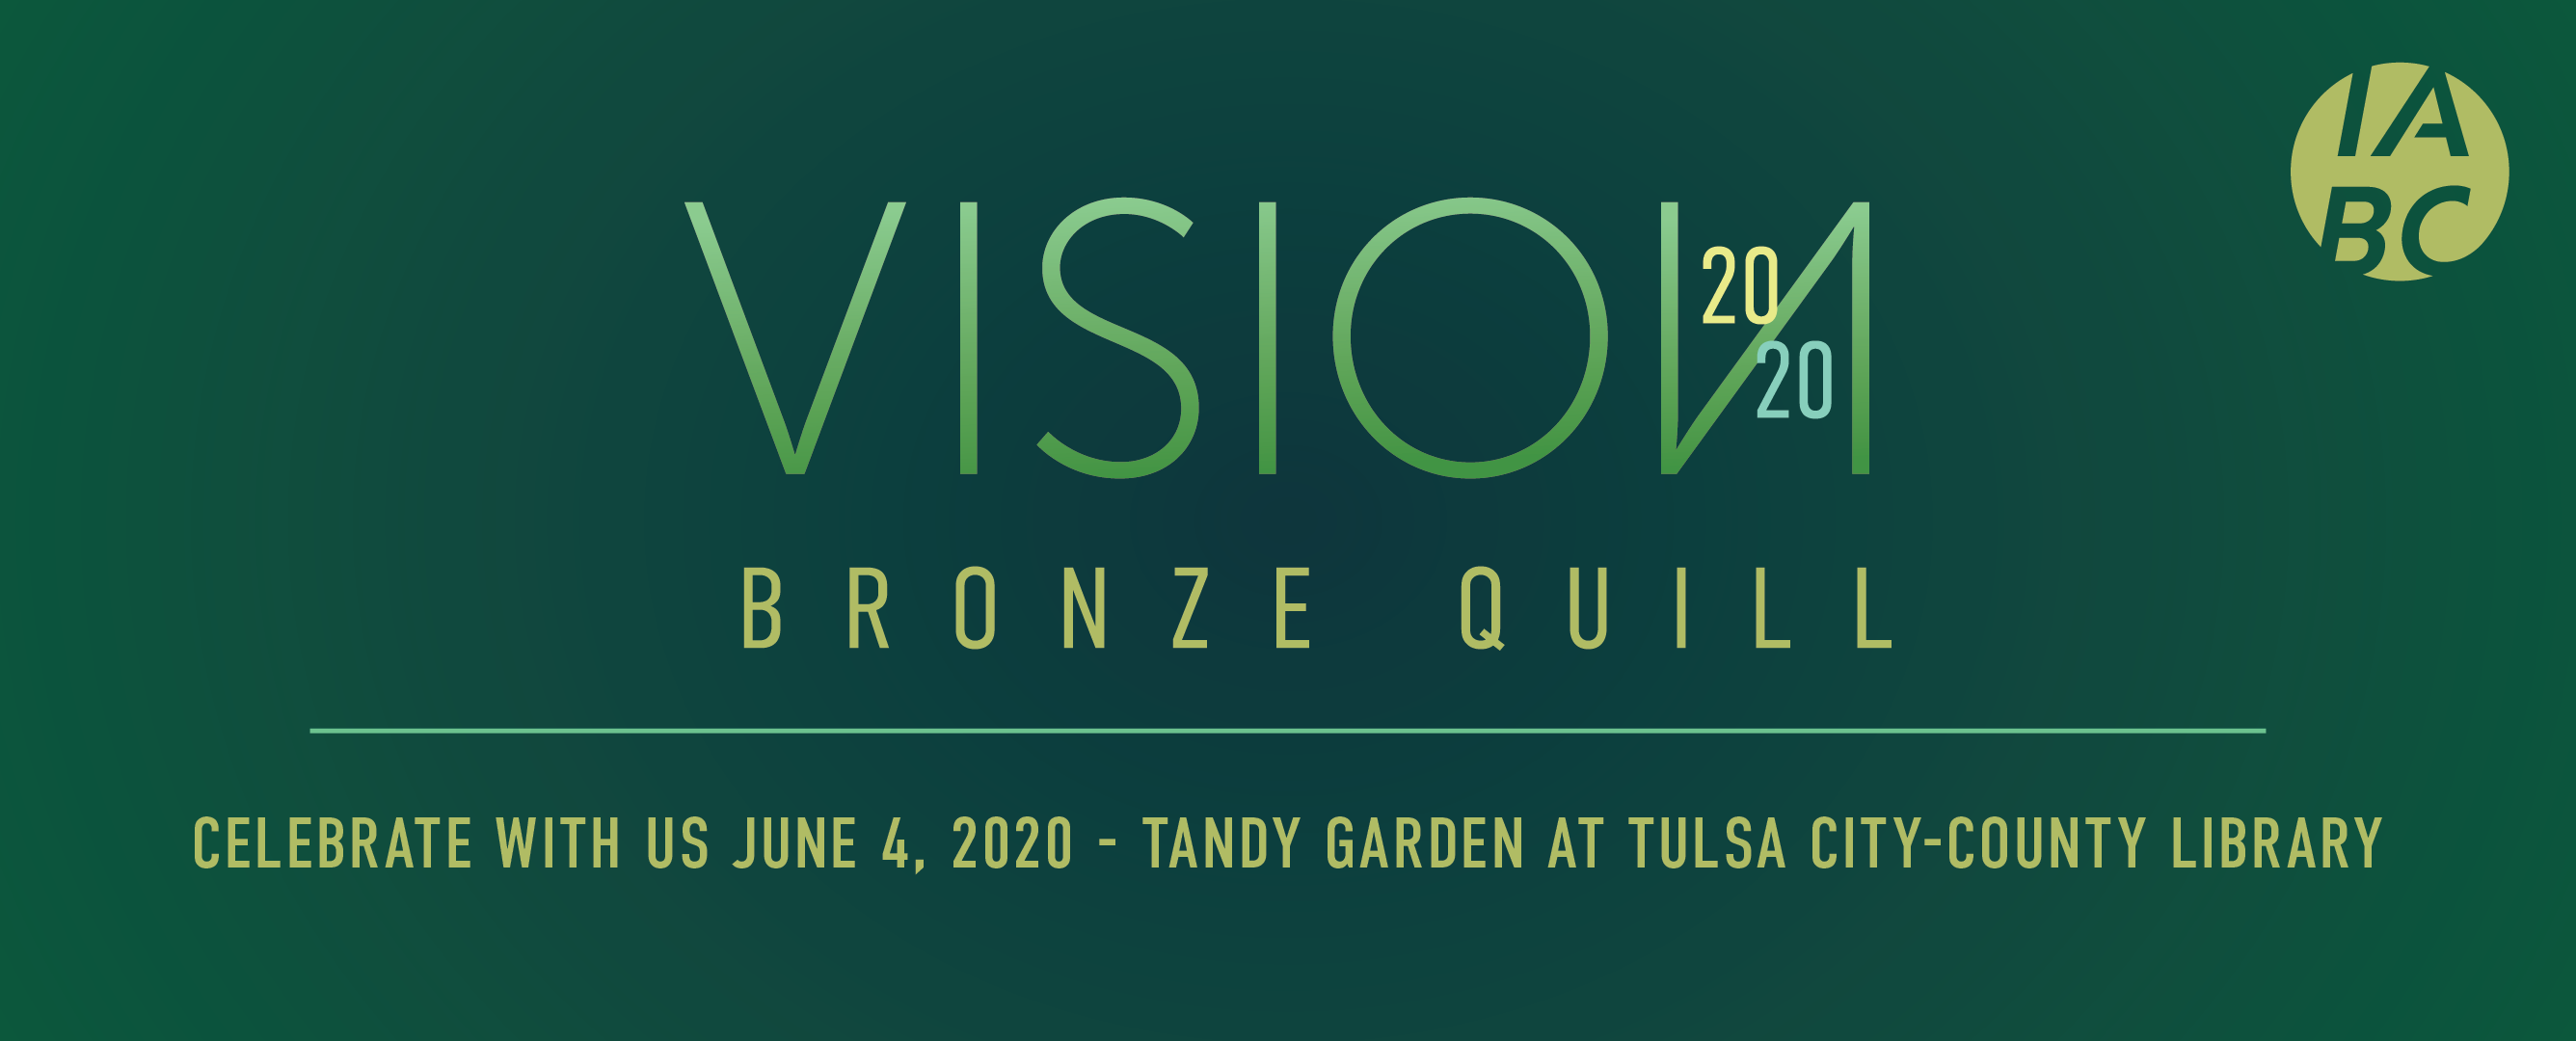 Vision 2020 Bronze Quill June 4, 2020 Tandy Garden at Tulsa City-County Library